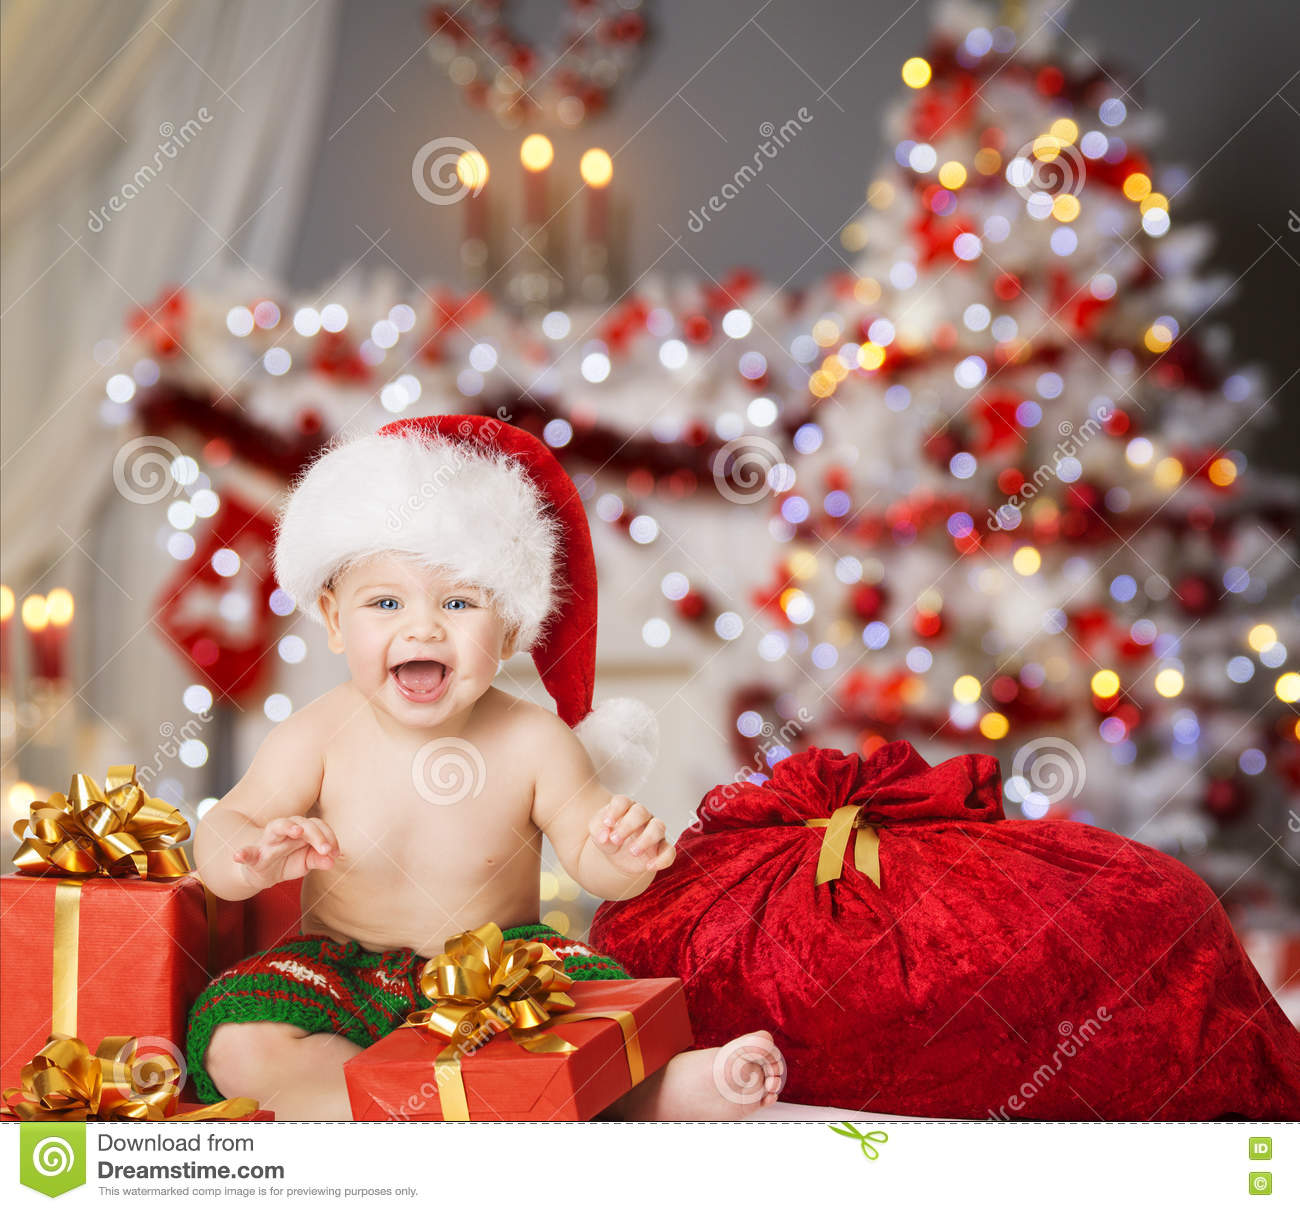 Xmas Stock Photos - Royalty Free Pictures